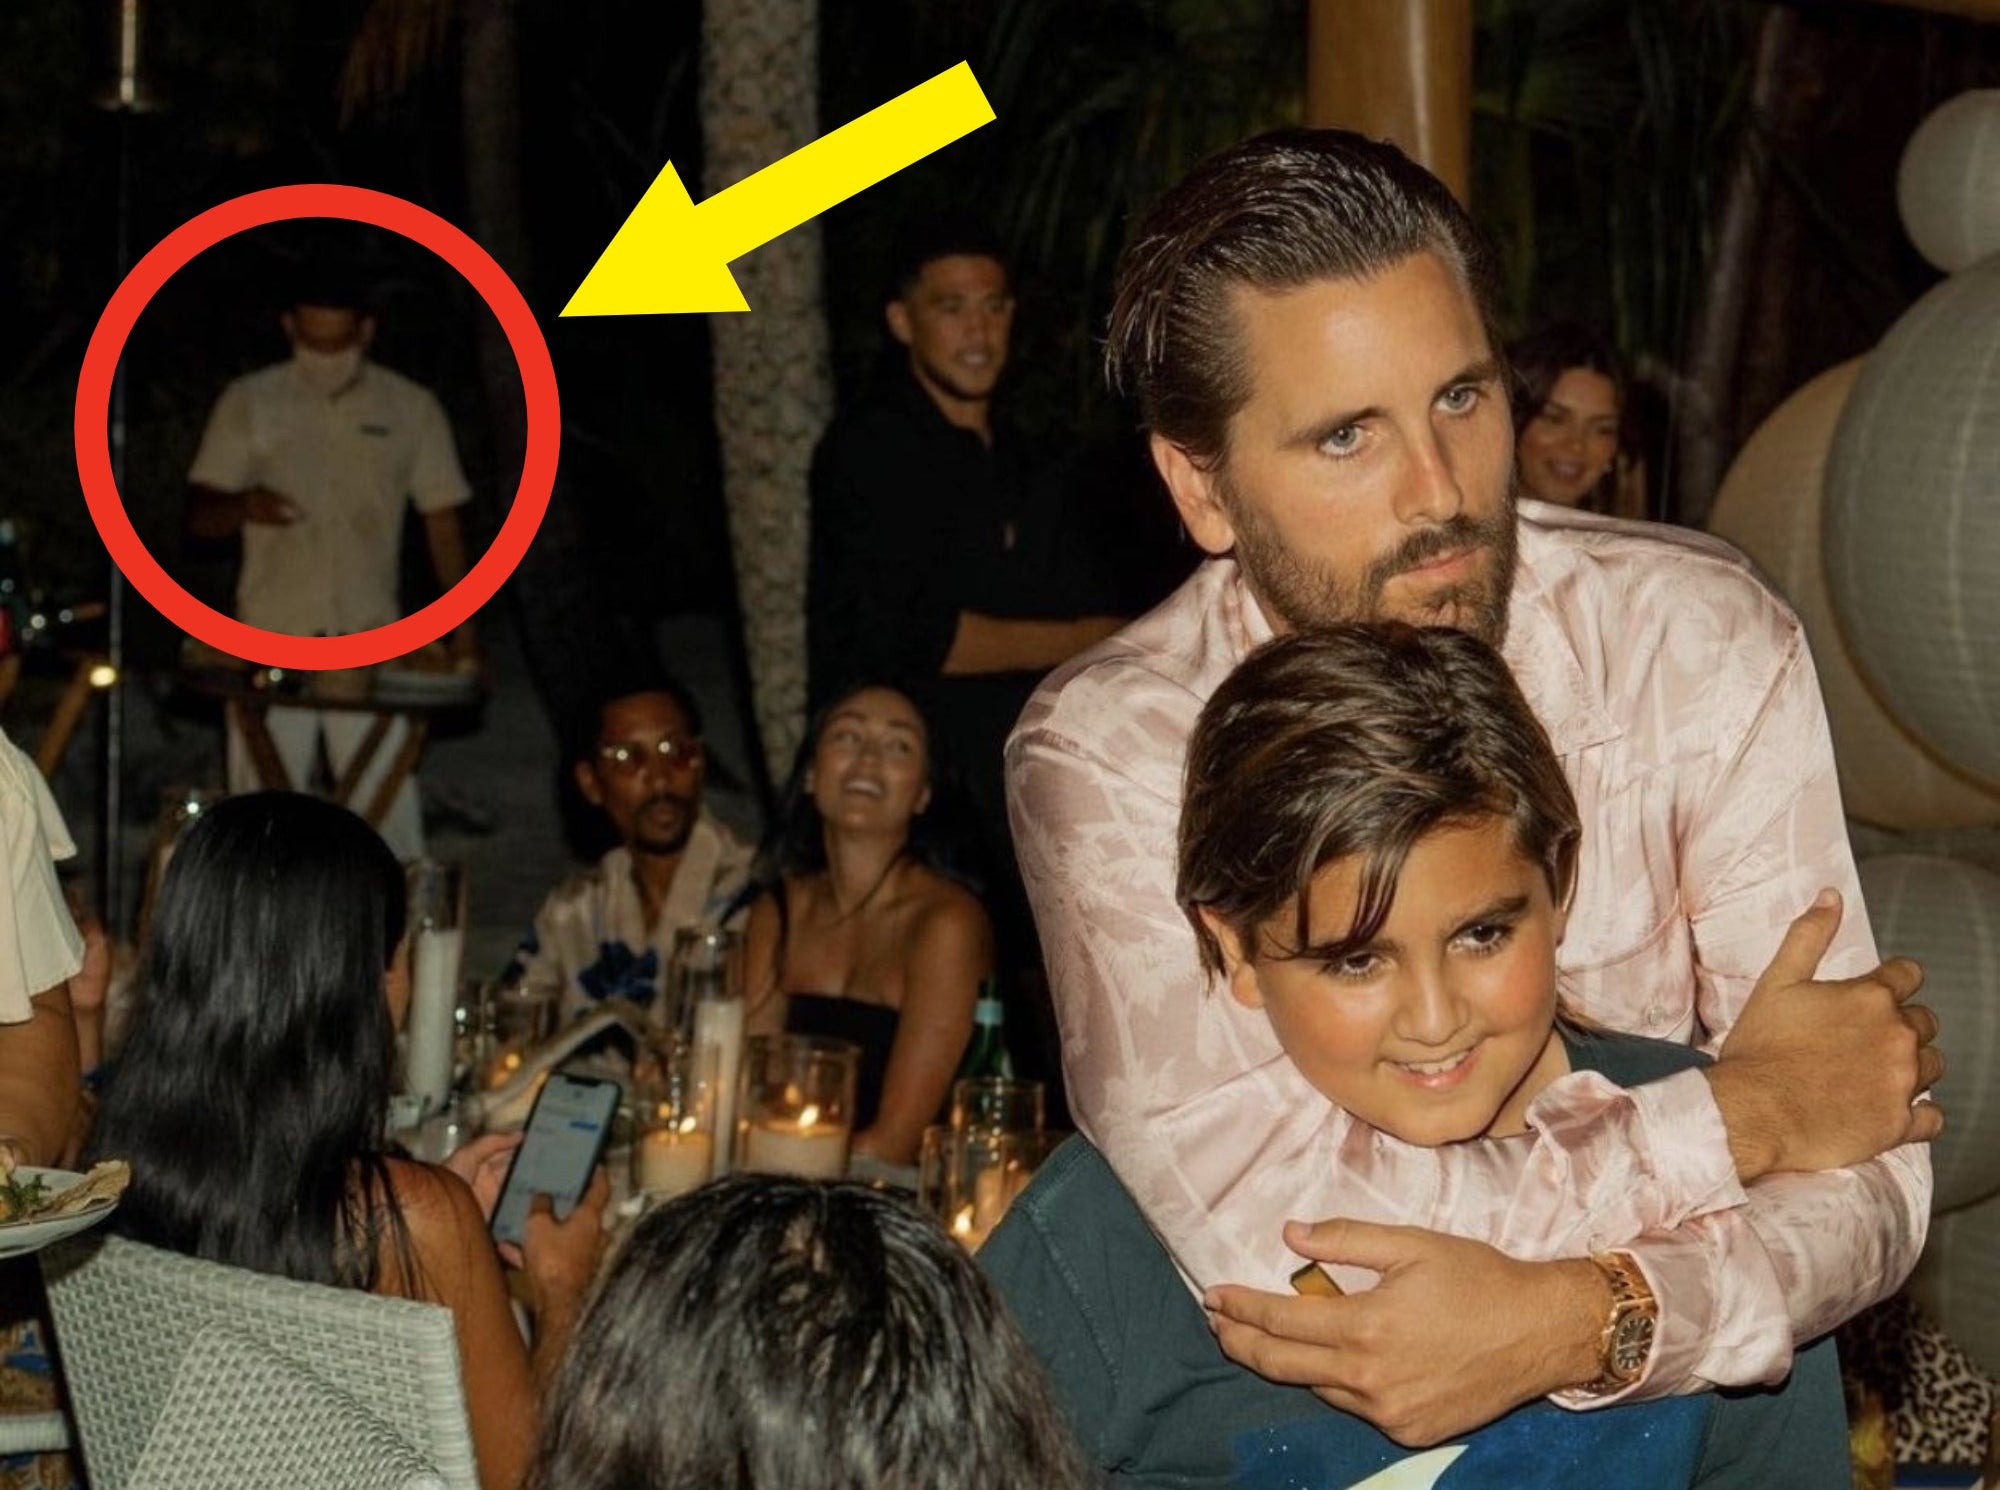 Scott and Mason Disick hugging as a masked waiter works in the background.